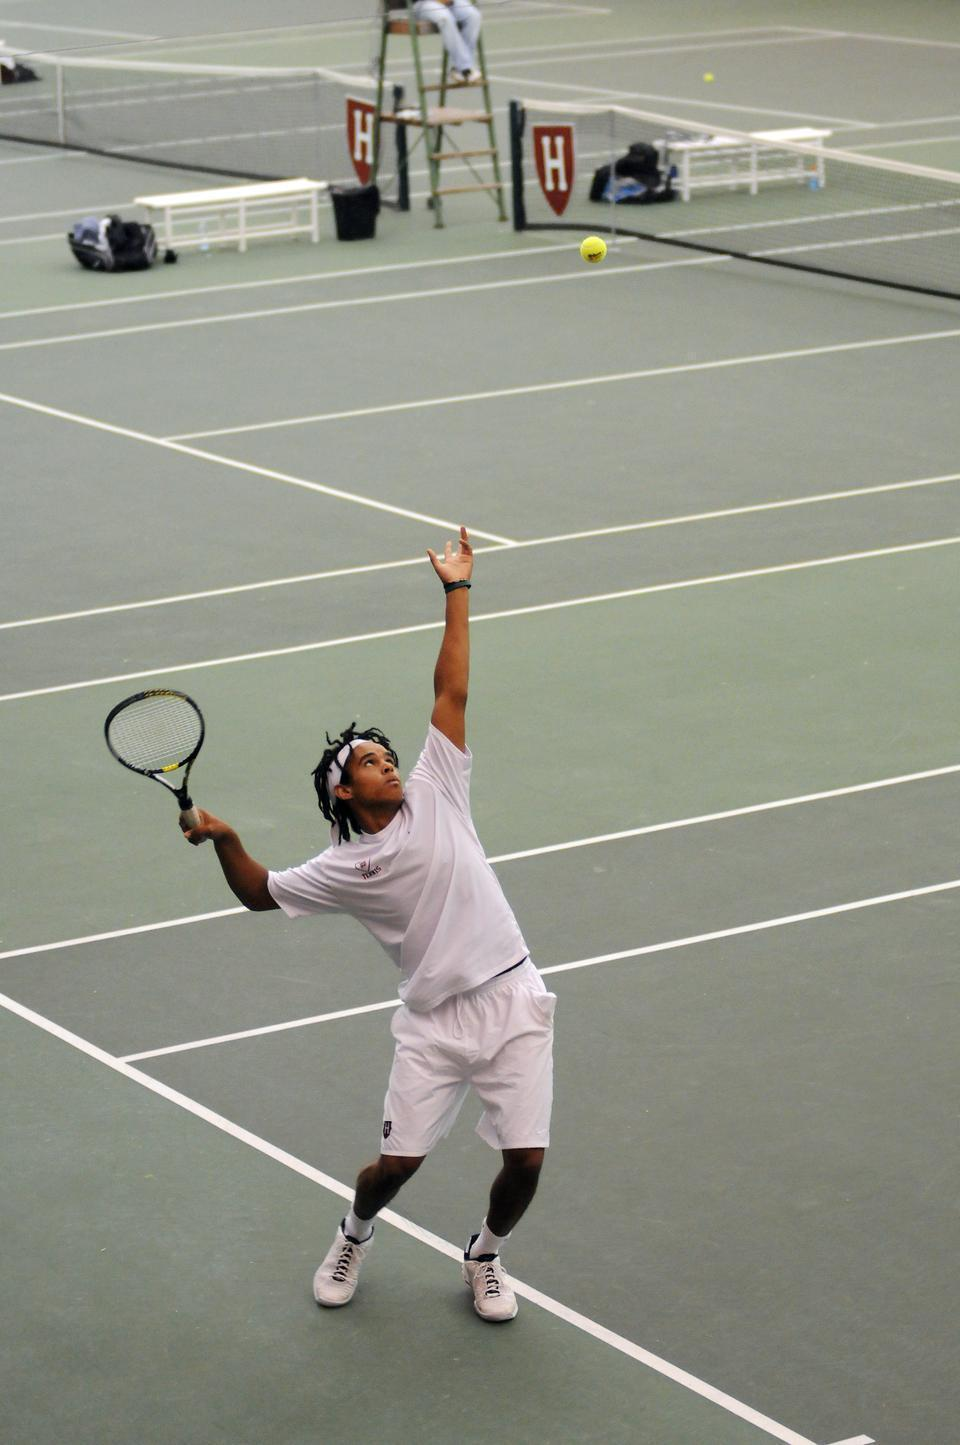 Captain Aba Omodele-Lucien closed out the year at 15-11 overall in singles and 7-2 in tournament play. In his college career he finished 57-49.